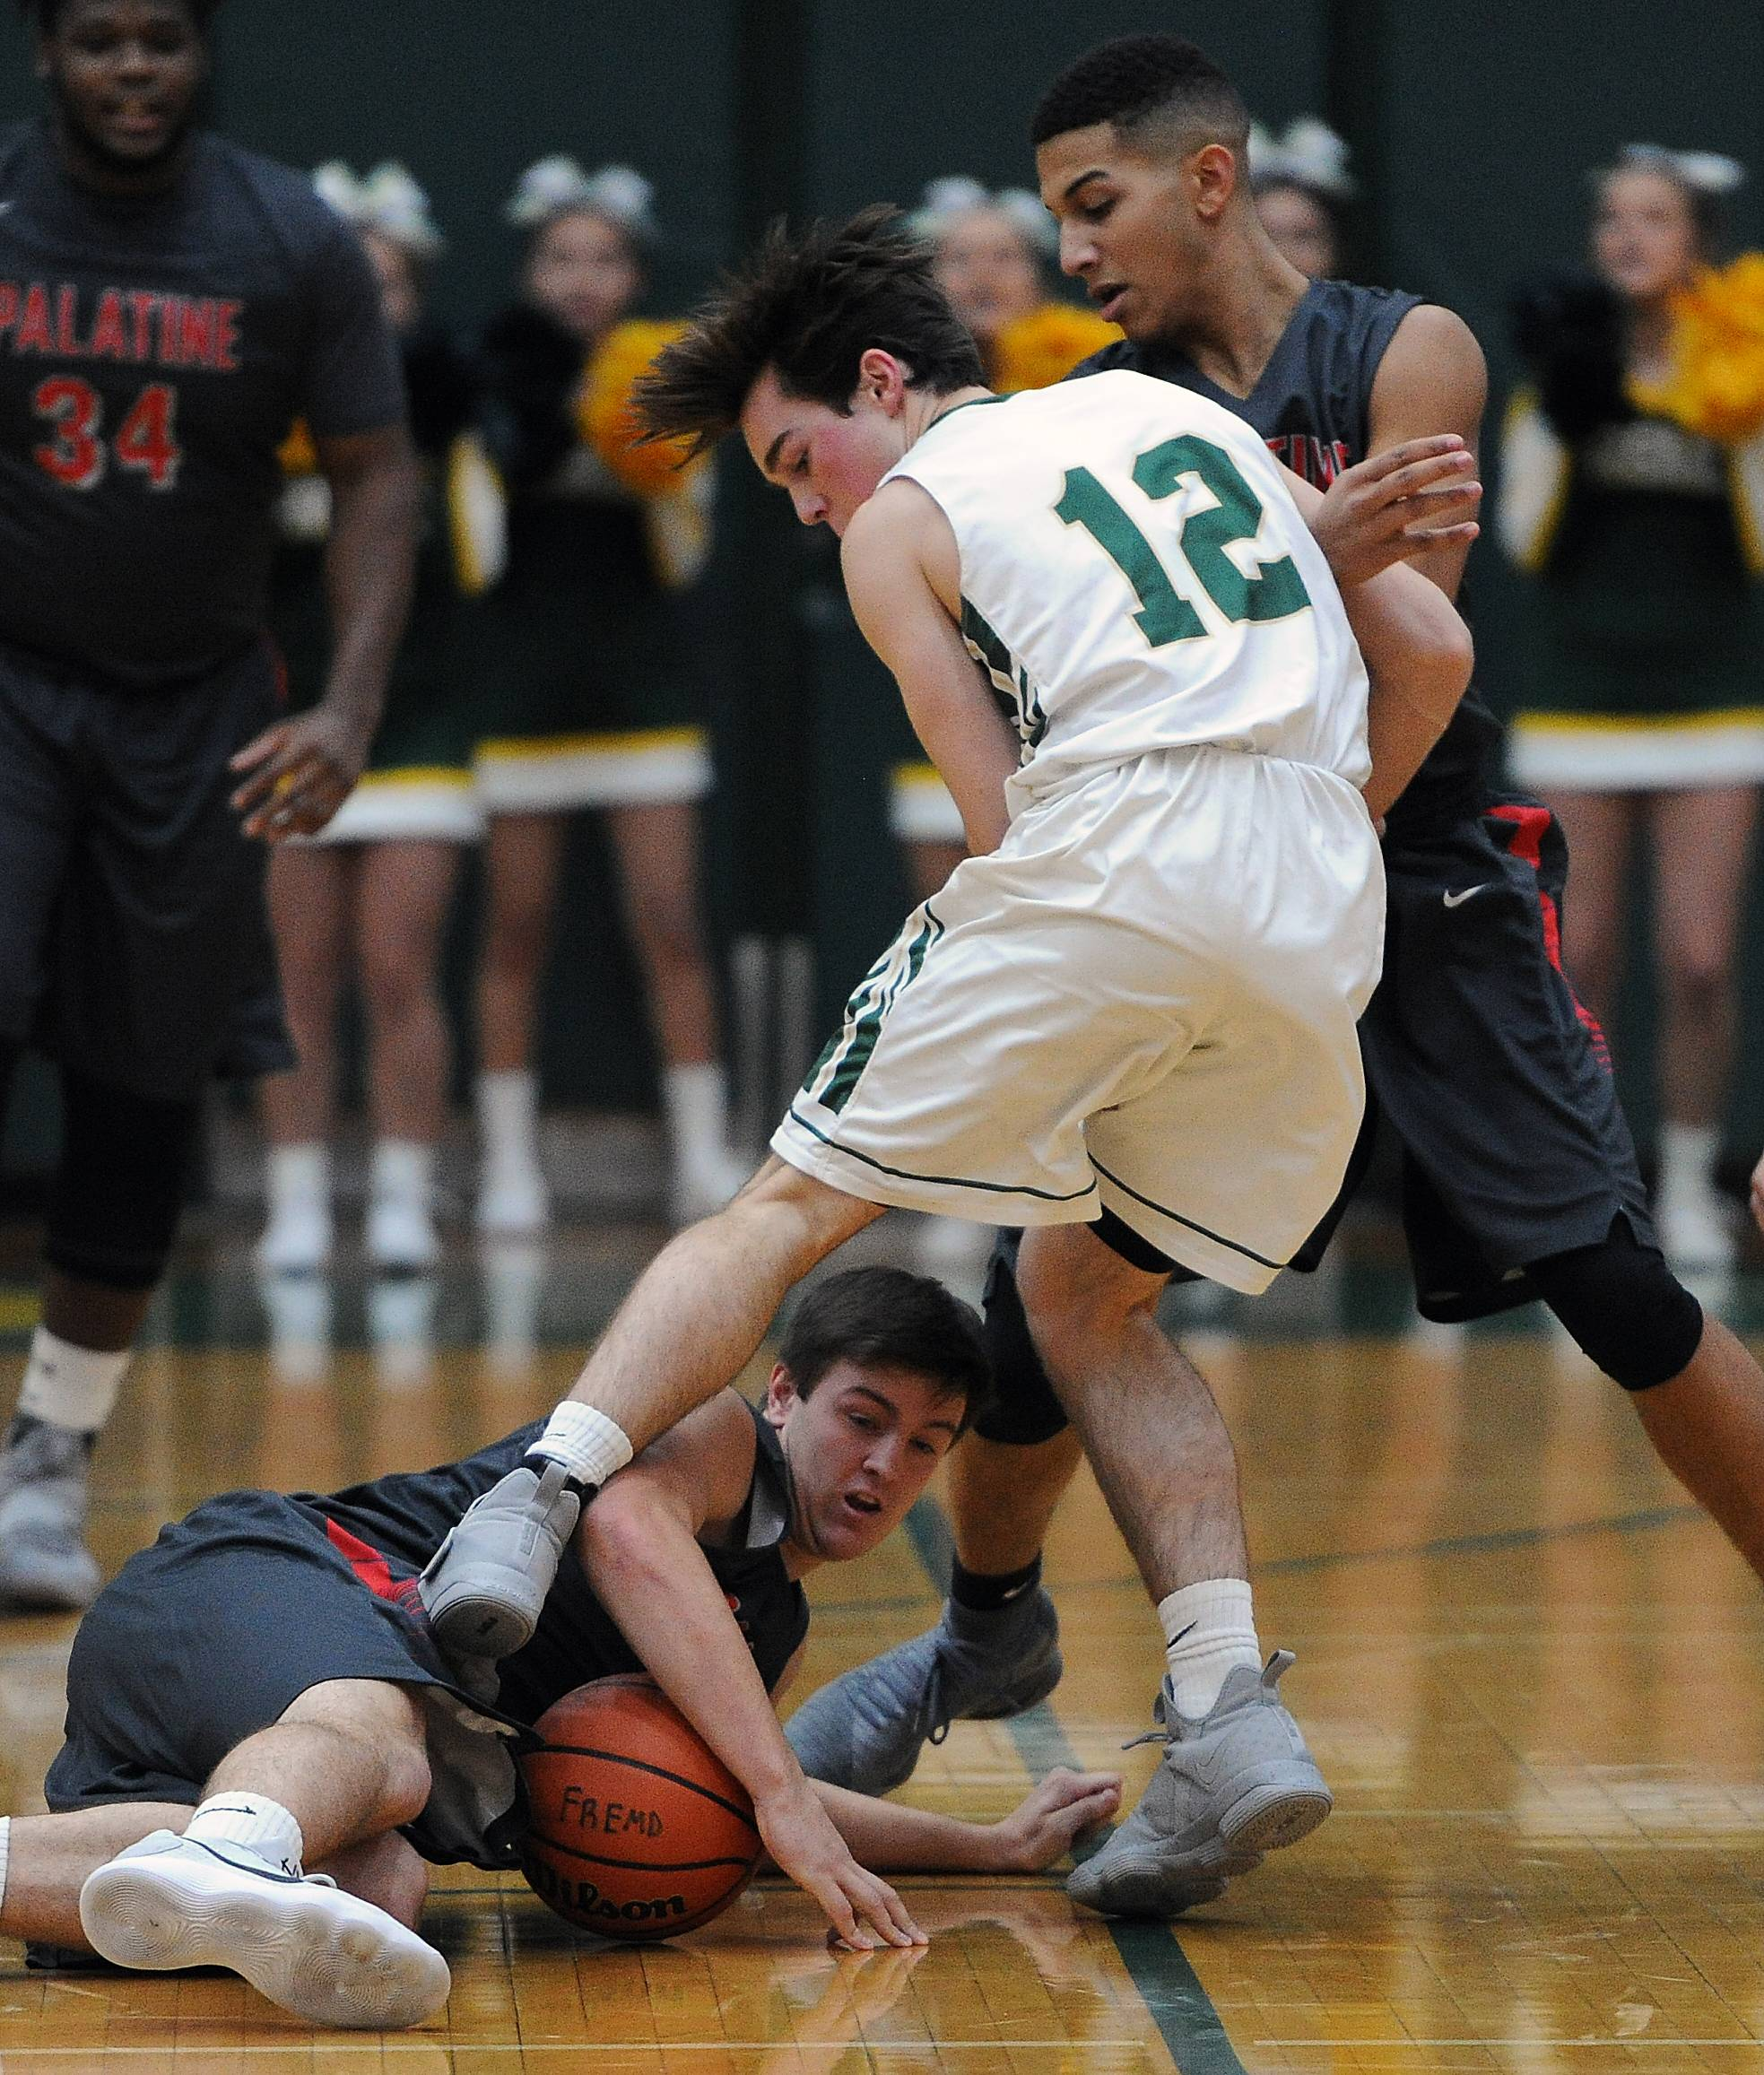 Palatine's Johnny O'Shea scrambles for the ball as Fremd's Luke Seidel tries to avoid stepping on him in the first quarter Friday at Fremd.